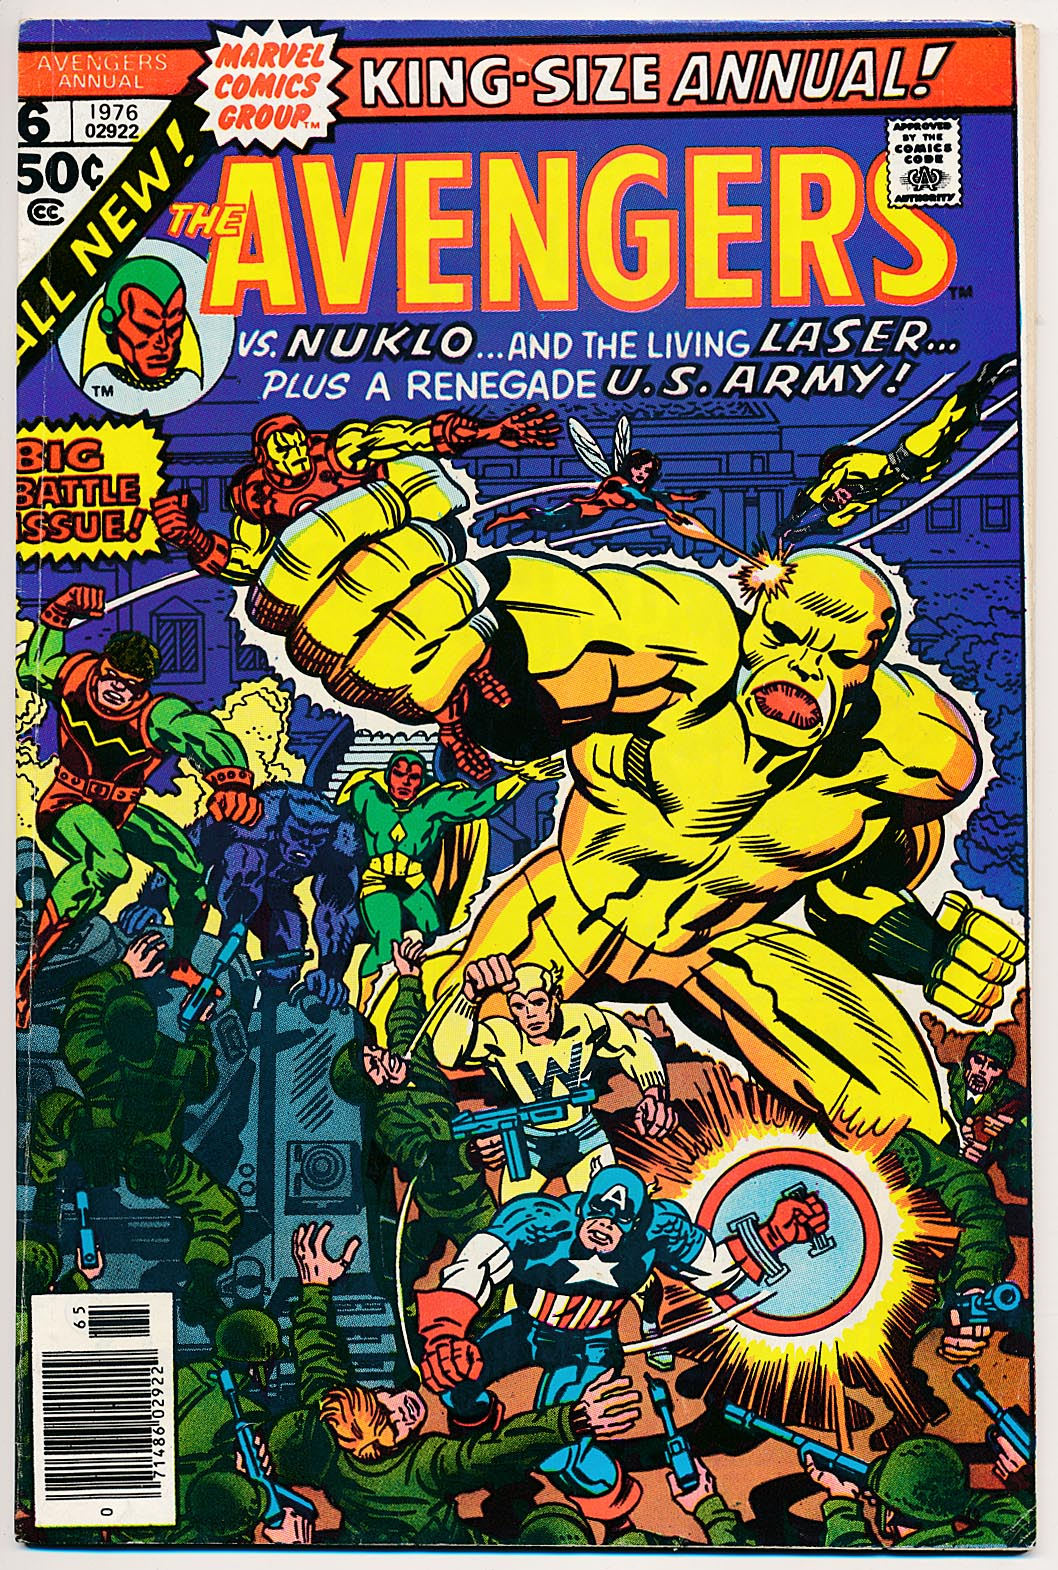 Avengers King-Size Annual 6 -VF